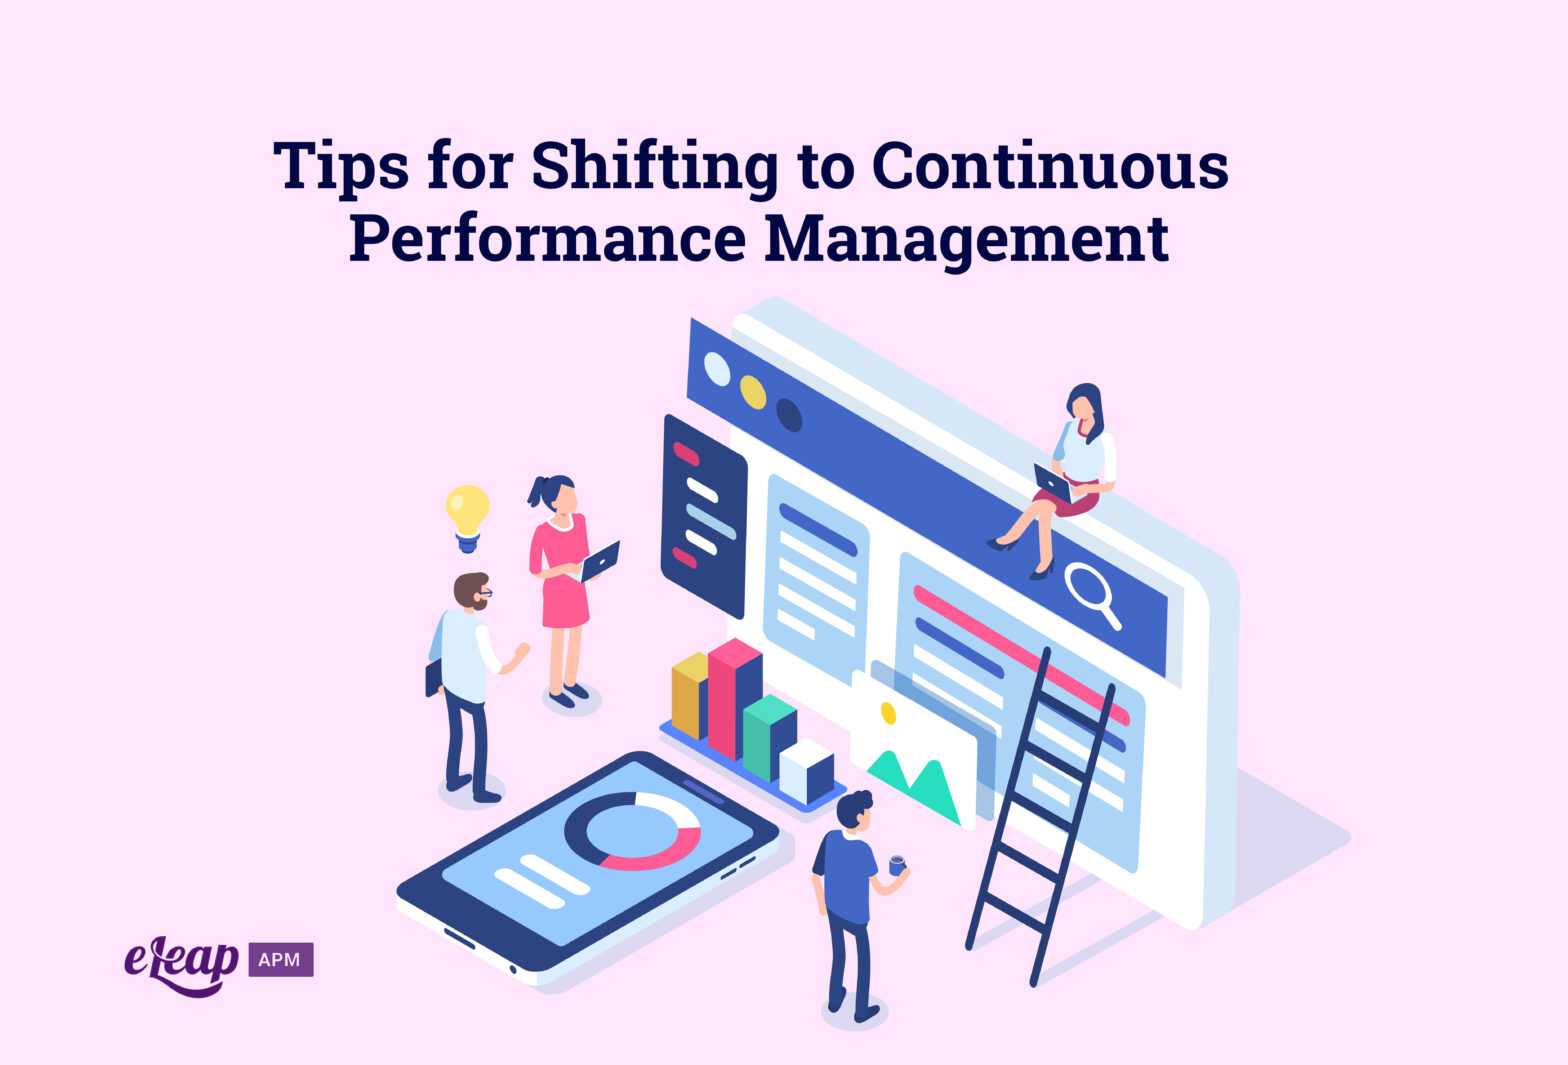 Tips for Shifting to Continuous Performance Management